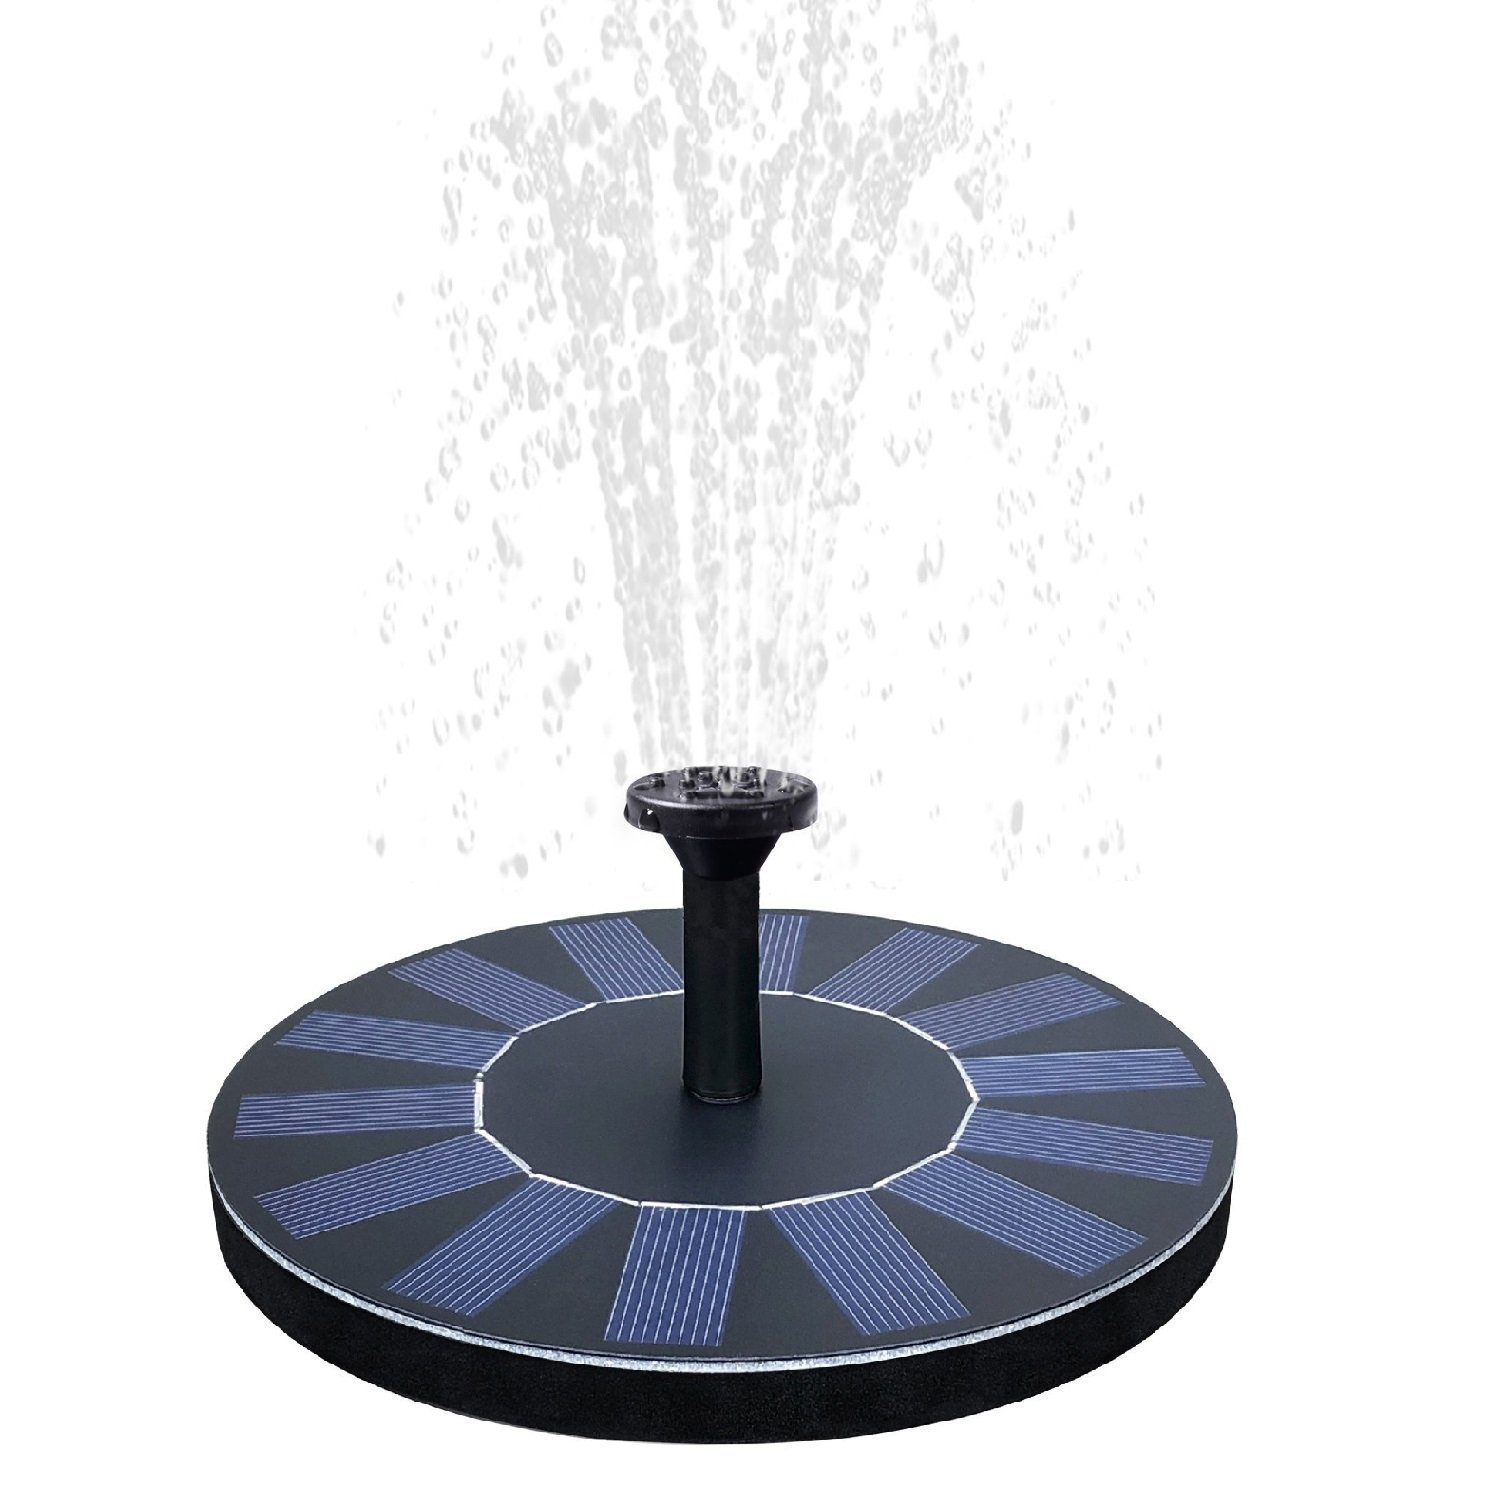 Solar Birdbath Fountain,1.4W Solar Panel Kit Water Pump Solar Powered Floating Fountain Kit Solar Water Fountain for Bird Bath Pond, Pool and Garden Decoration